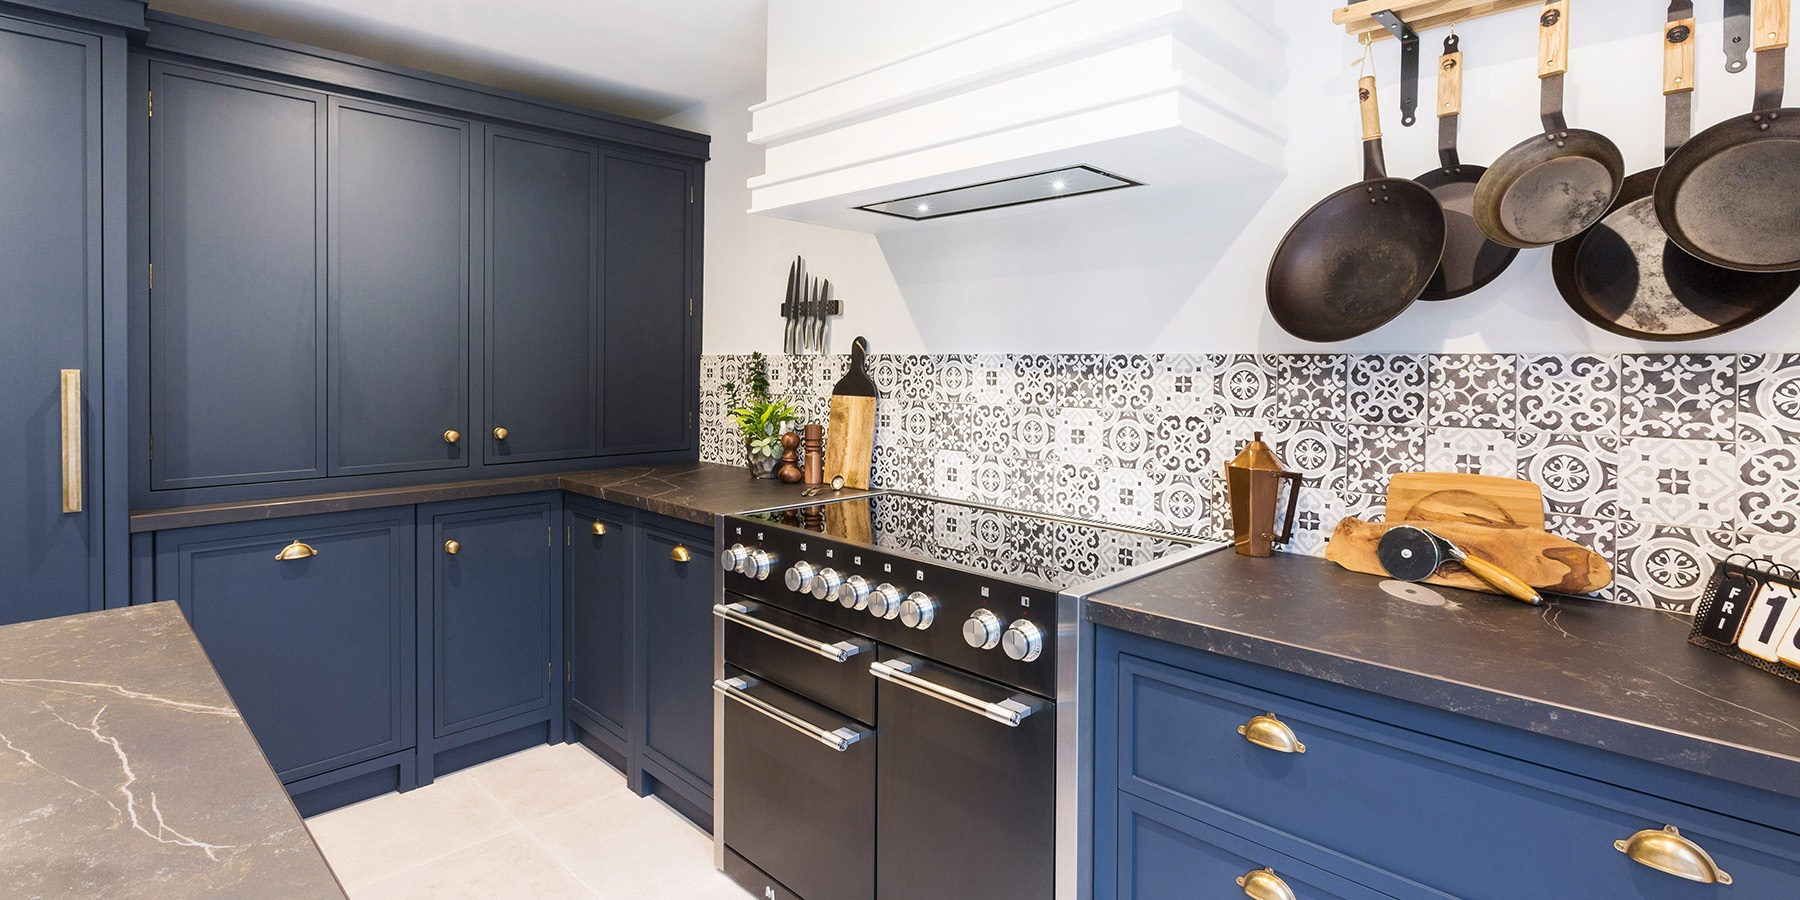 Burlanes Handpainted Bespoke Shaker Kitchen - Burlanes bespoke handpainted Decolane kitchen with larder units and integrated appliances.